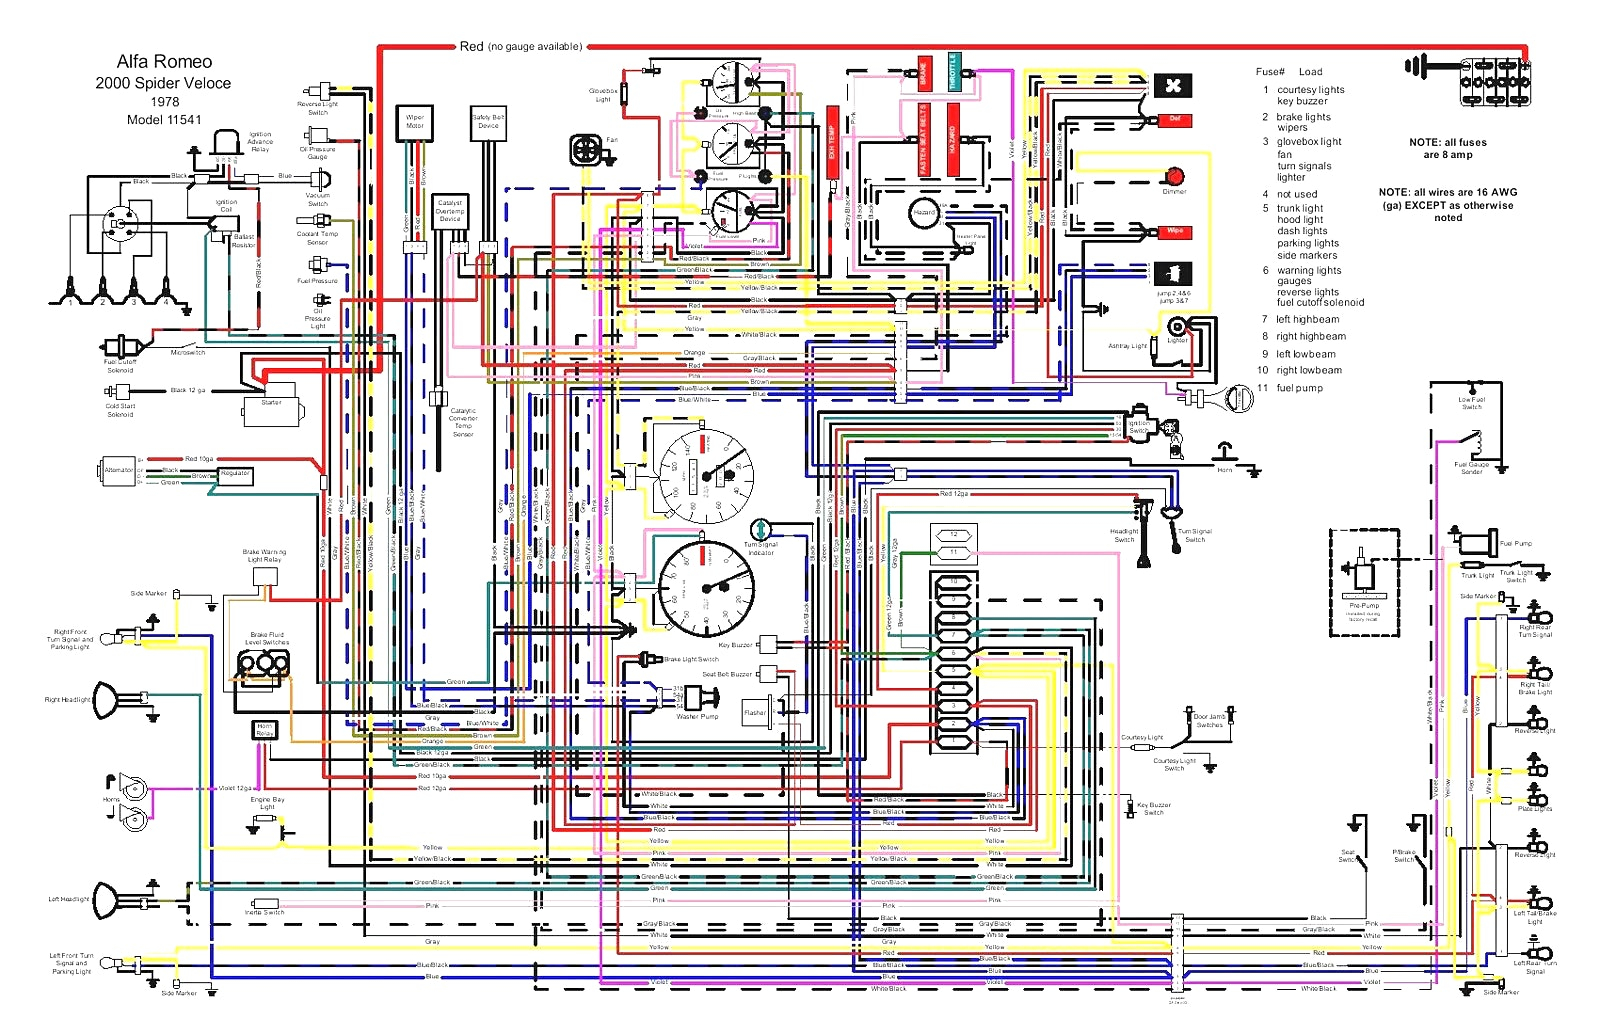 automotive wiring diagram software Collection-Automotive Wiring Diagram software Beautiful Diagrams Electrical and Tele Plan software Free Wiring Diagram 3-q